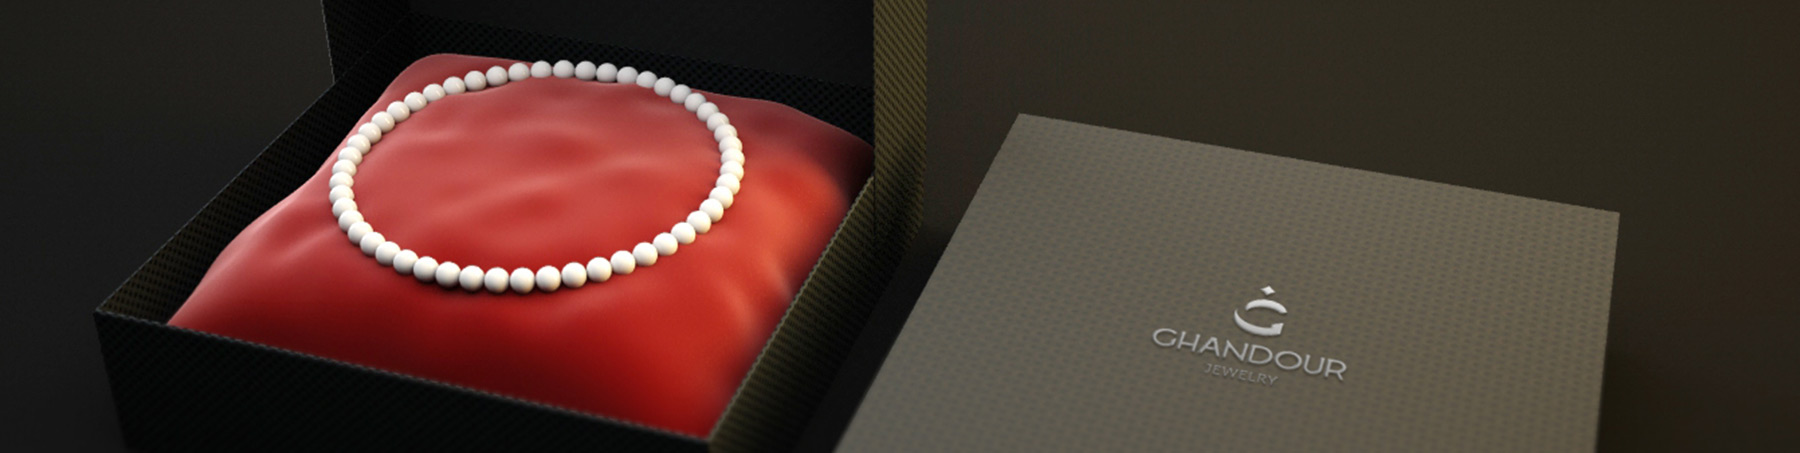 GHANDOUR-logo on box with pearl necklace